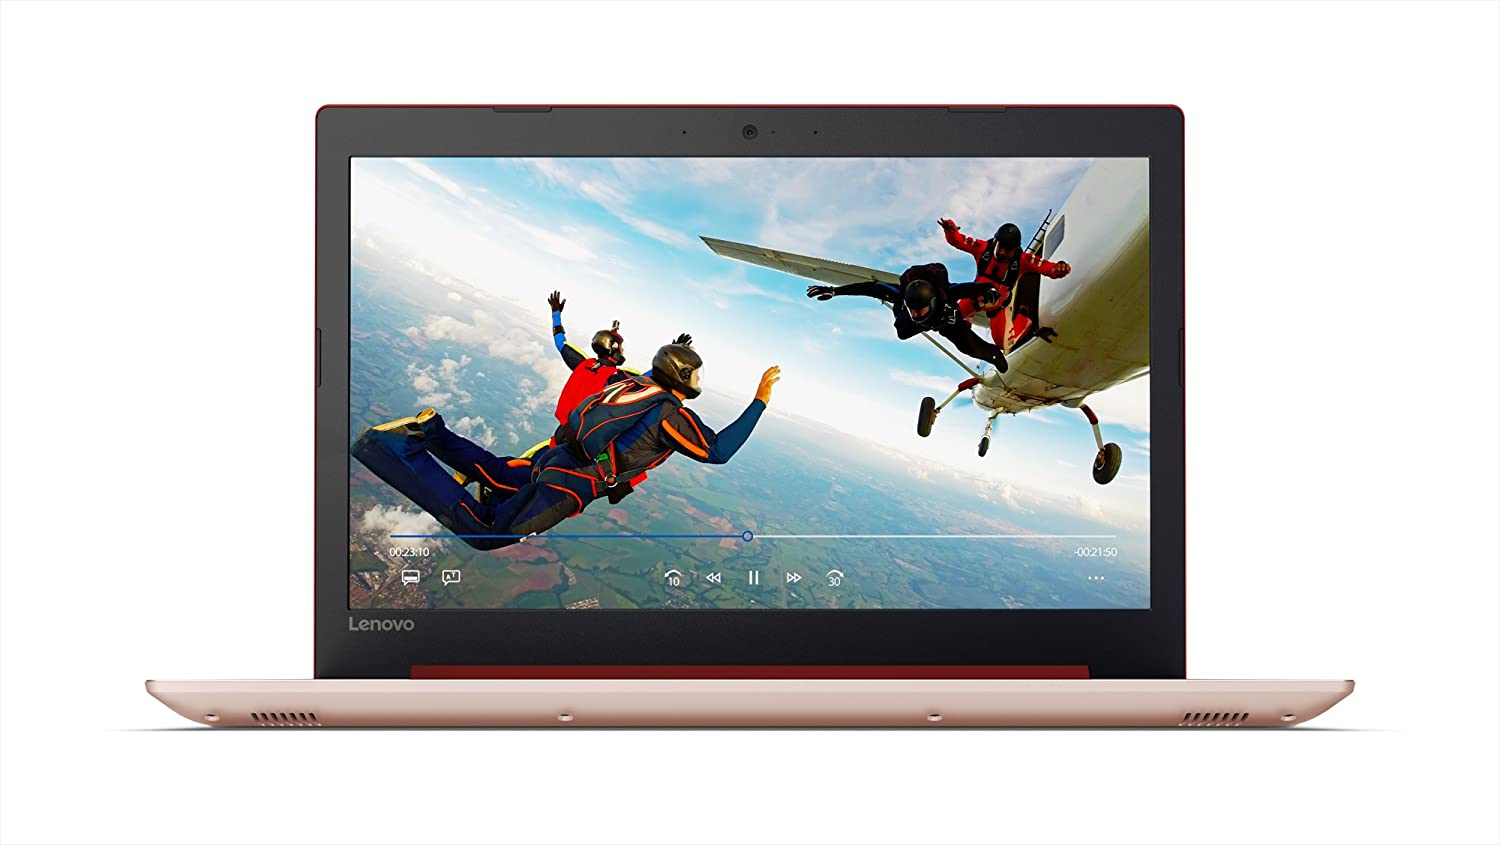 2020 Newest Premium Flagship Lenovo Ideapad 330 15.6 Inch HD Laptop (Intel Core i3-8130U (Beat i5-7200U) up to 3.4GHz, 8GB DDR4 RAM, 128GB SSD, WiFi, Bluetooth, HDMI, Windows 10) (Red)